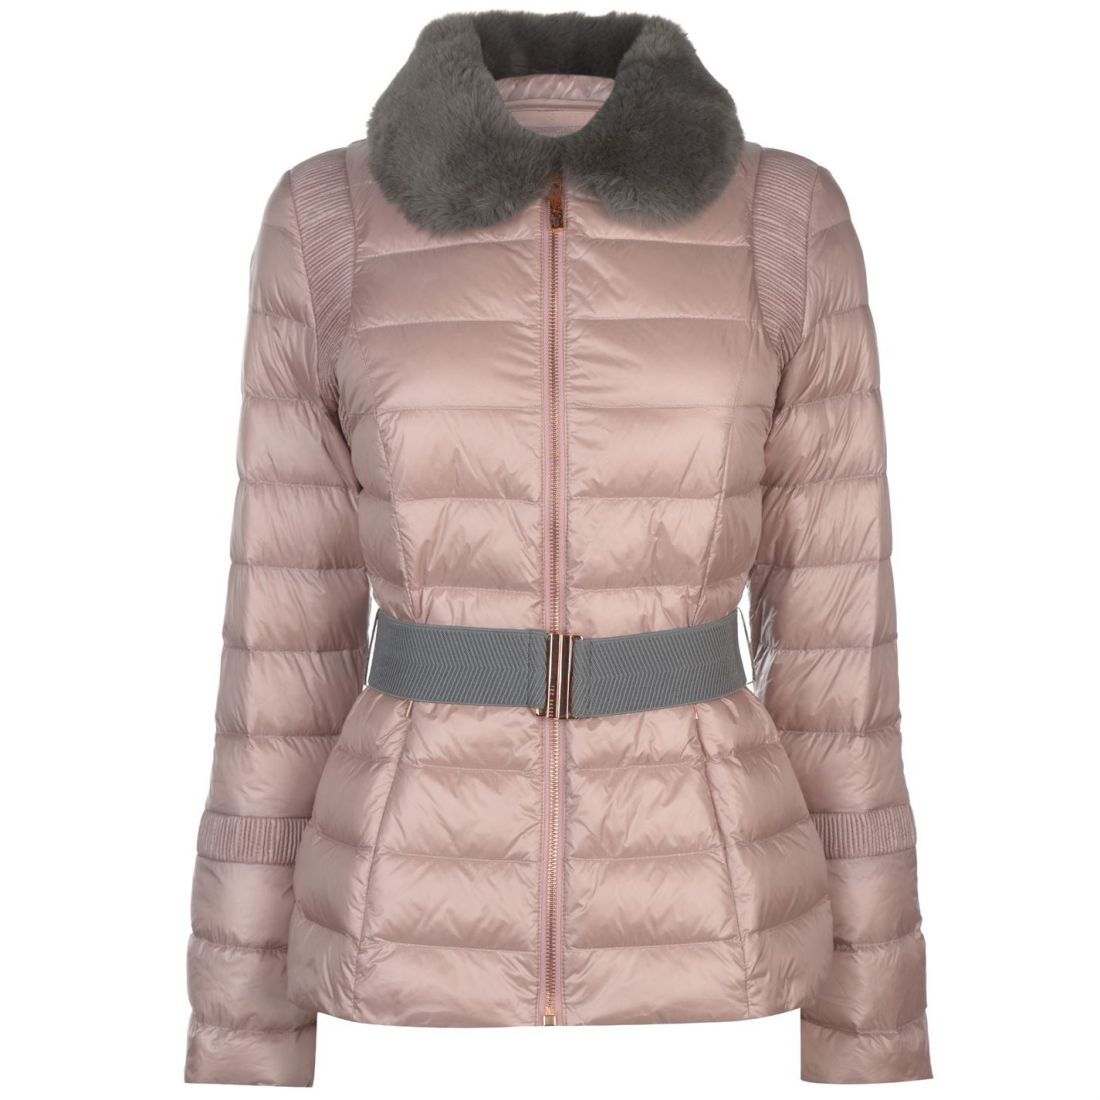 5eab19e8a775 Details about Womens Ted Baker Padded Coat Formal Long Sleeve New